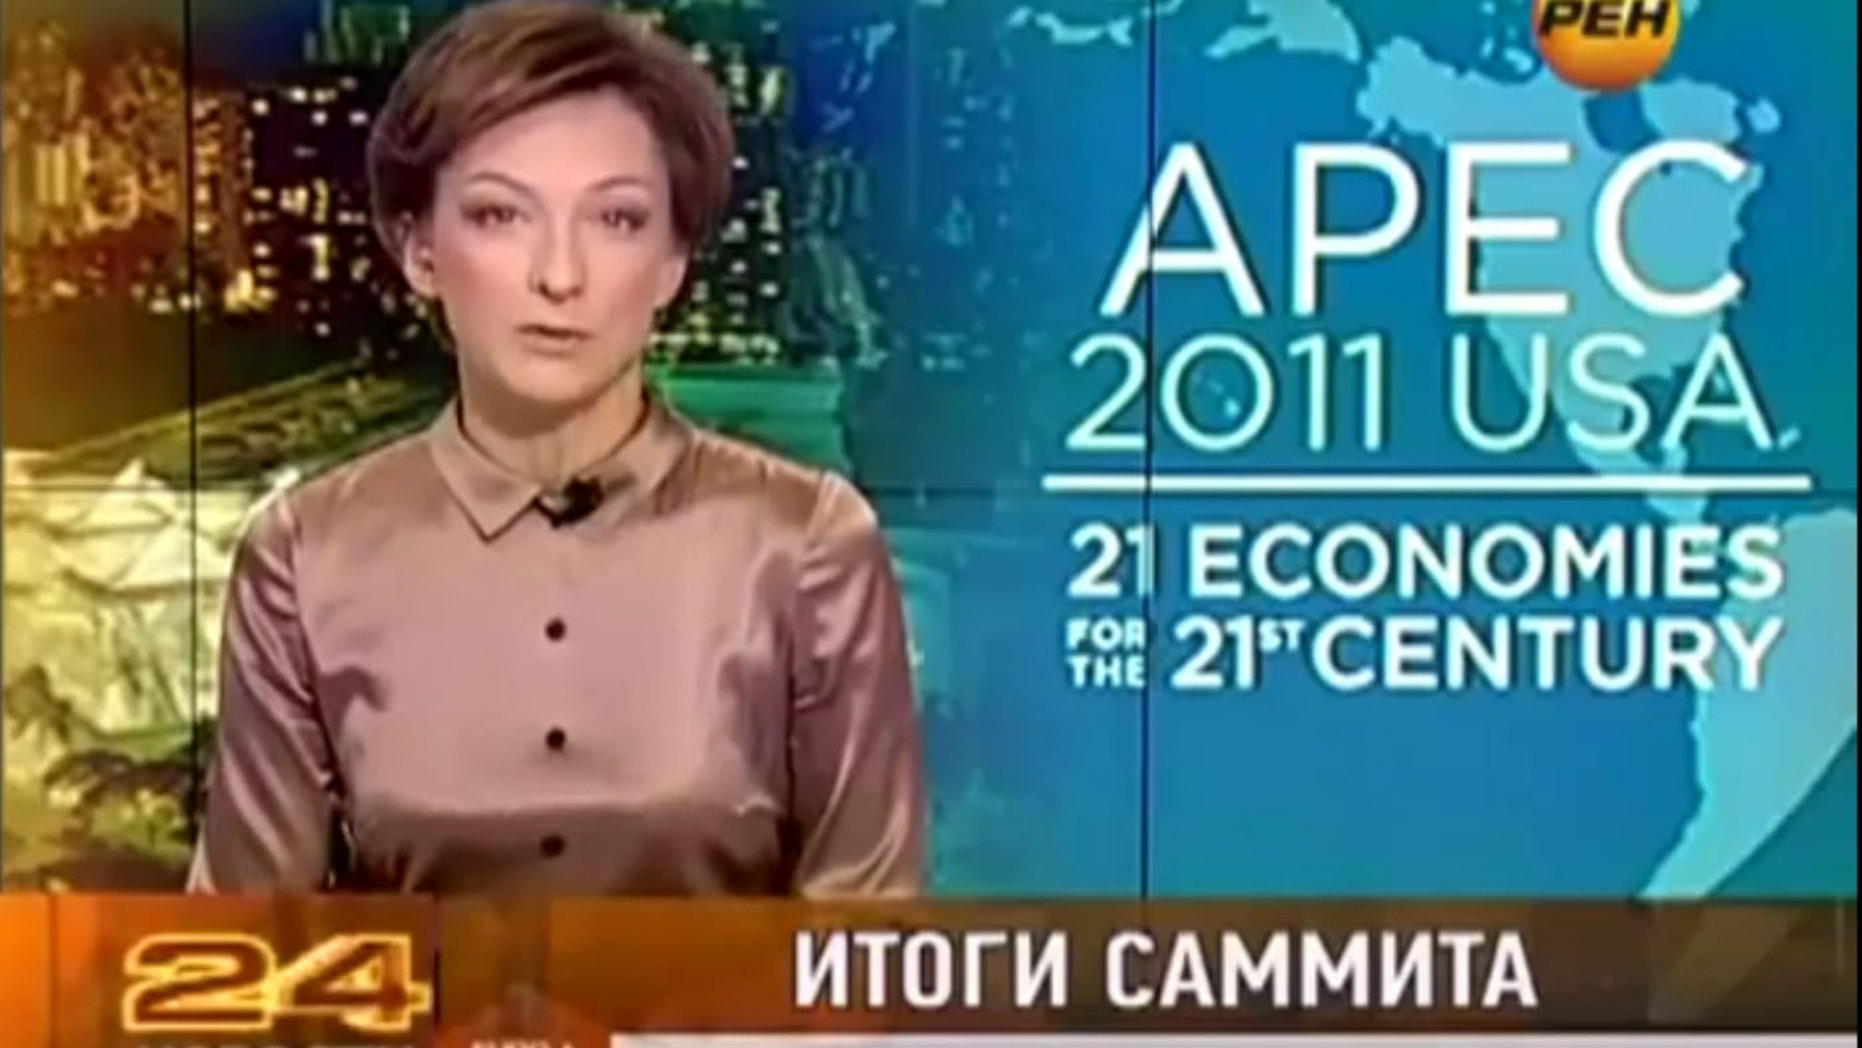 Nov. 2011: Russian newscaster Tatyana Limanova, above, apparently gave President Obama the middle finger during a live newscast.